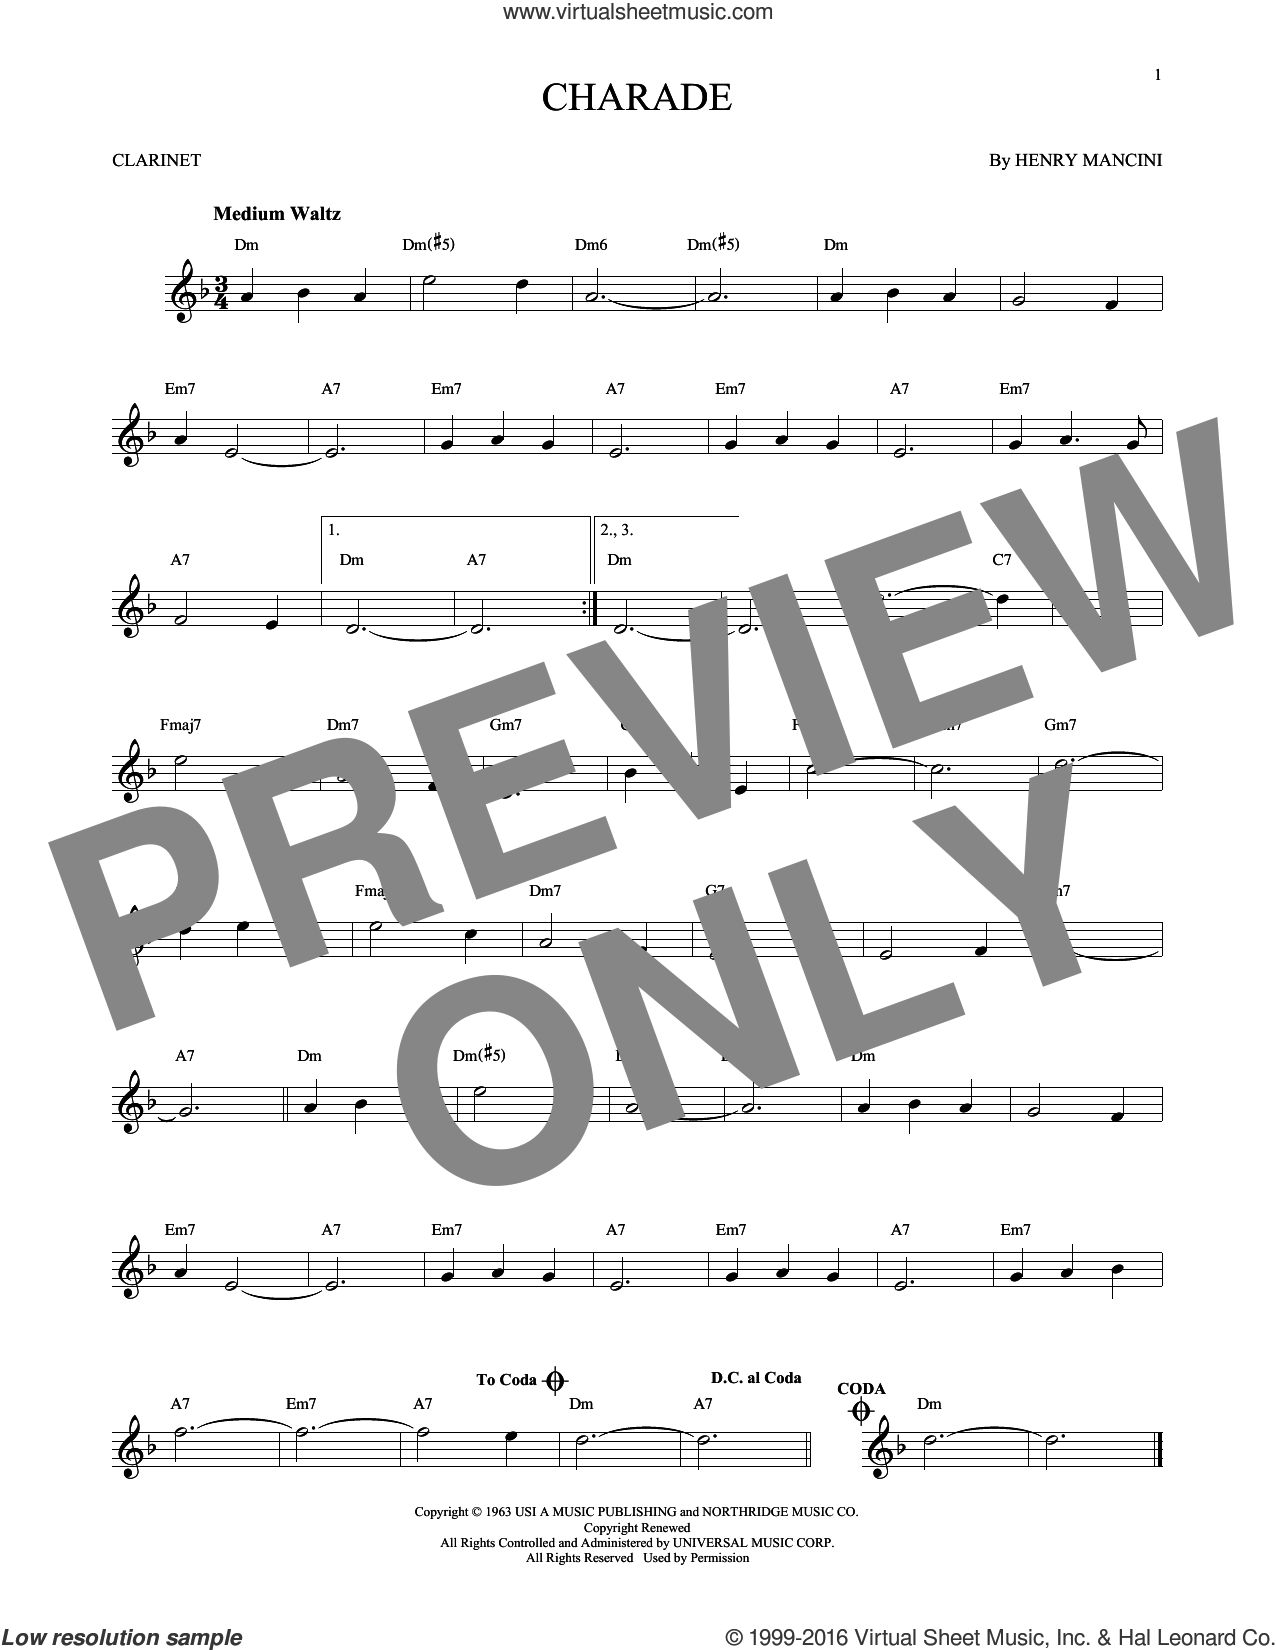 Charade sheet music for clarinet solo by Henry Mancini, intermediate